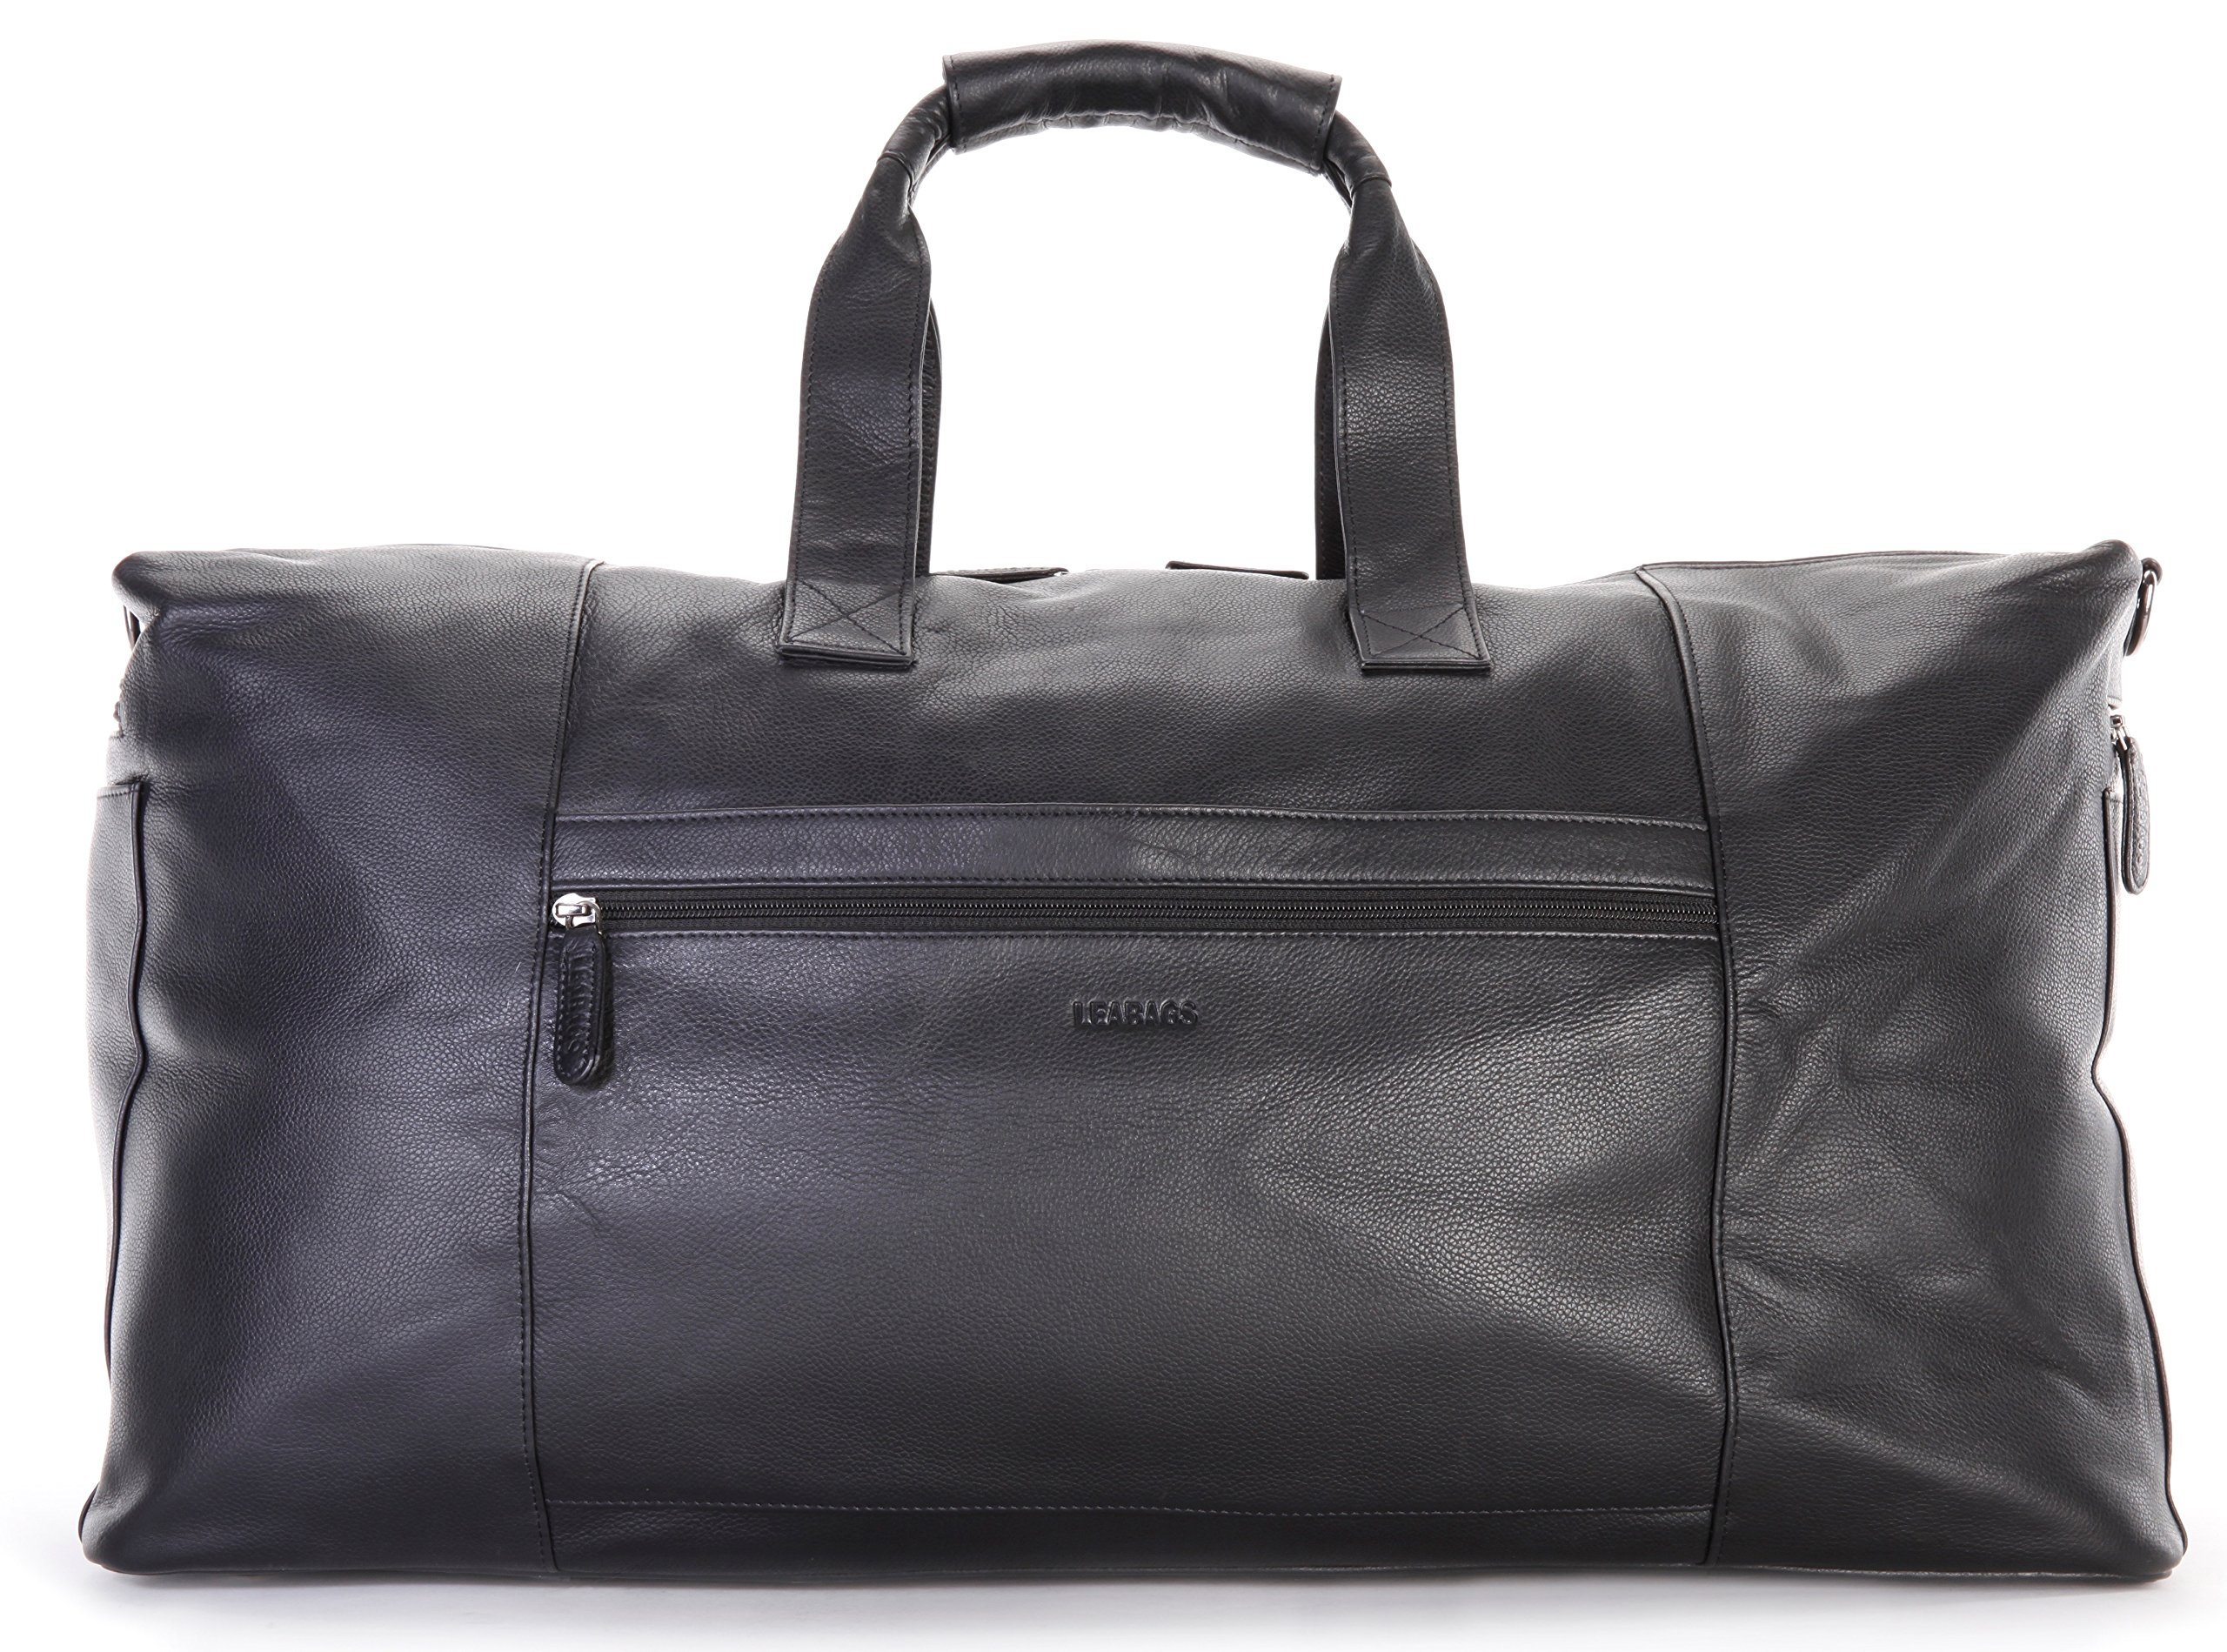 LEABAGS Sydney genuine buffalo leather duffle bag in vintage style - OnyxBlack